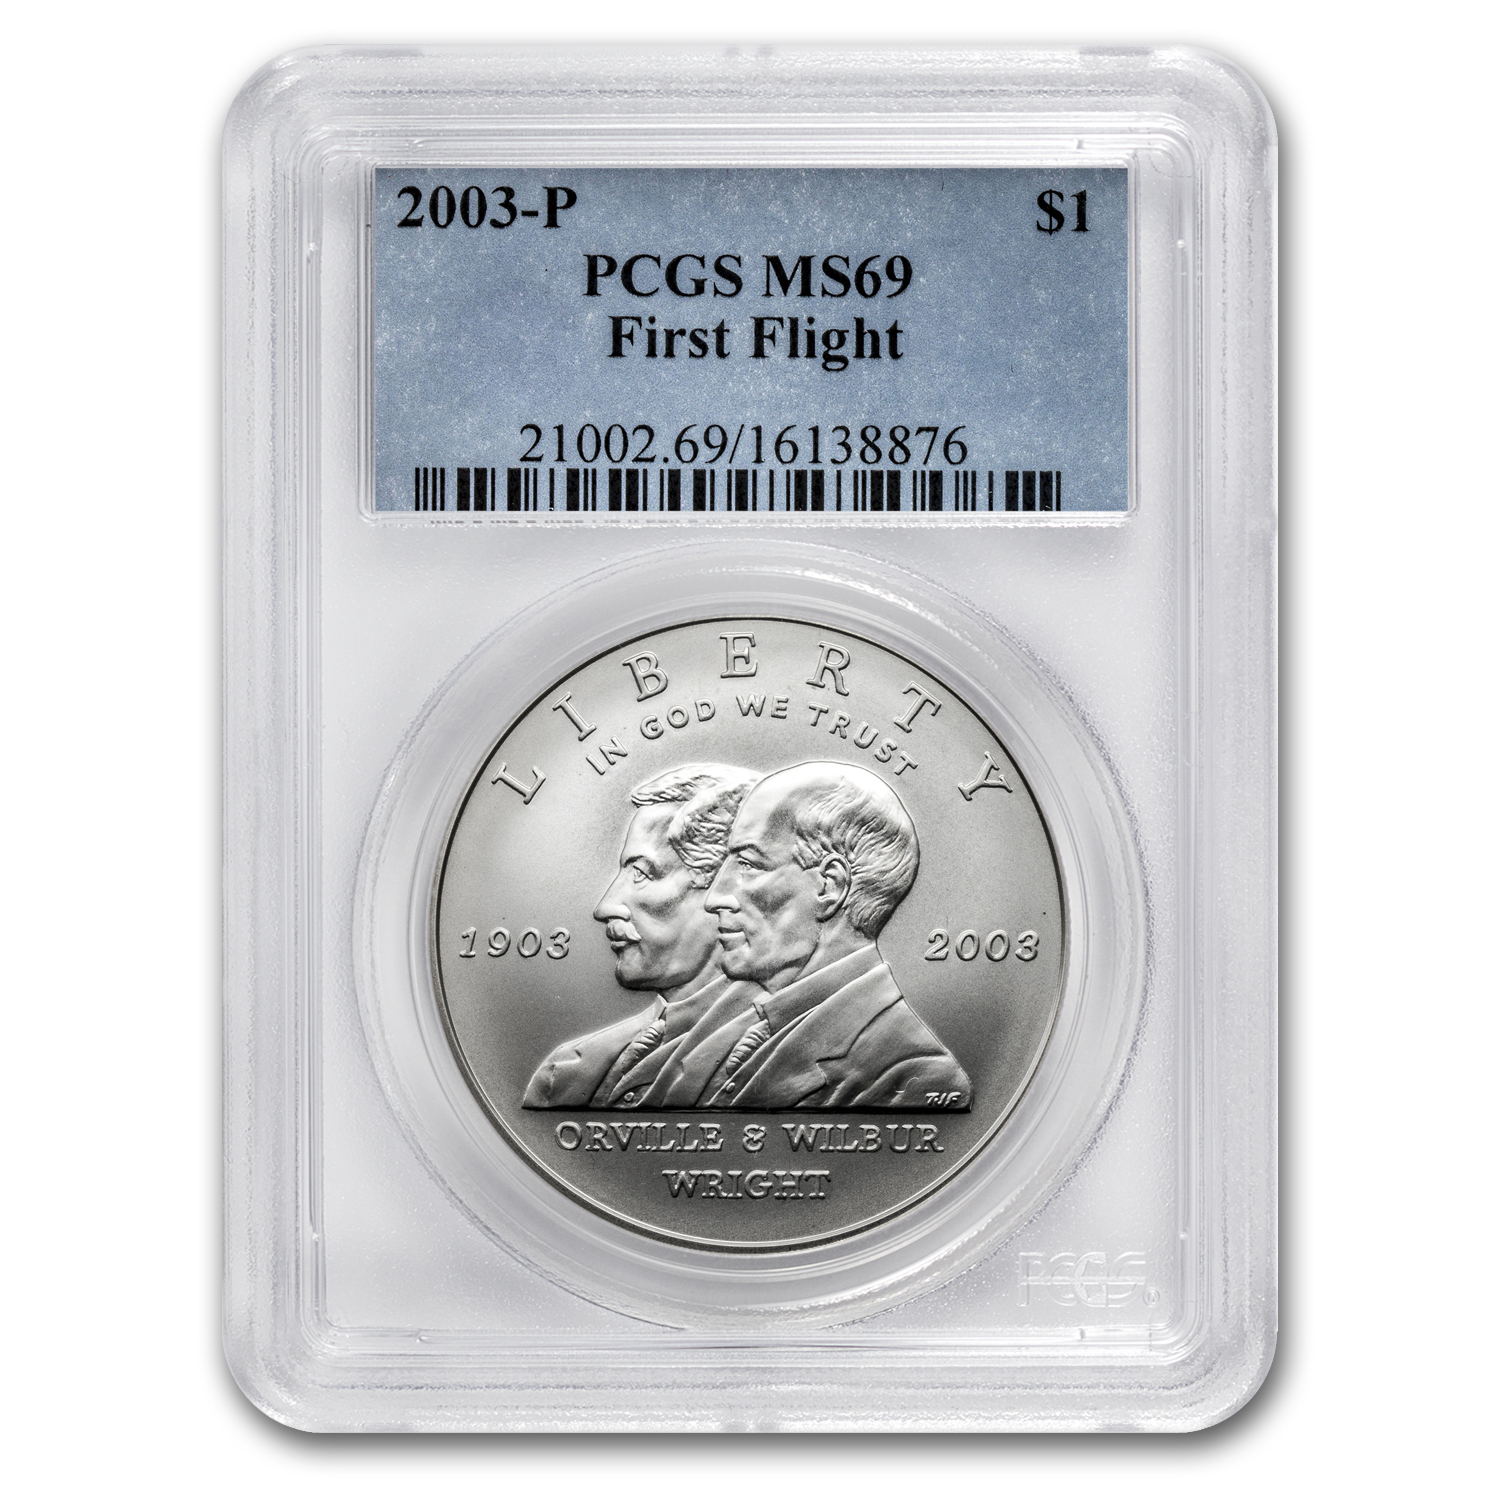 2003-P First Flight Centennial $1 Silver Commem MS-69 PCGS